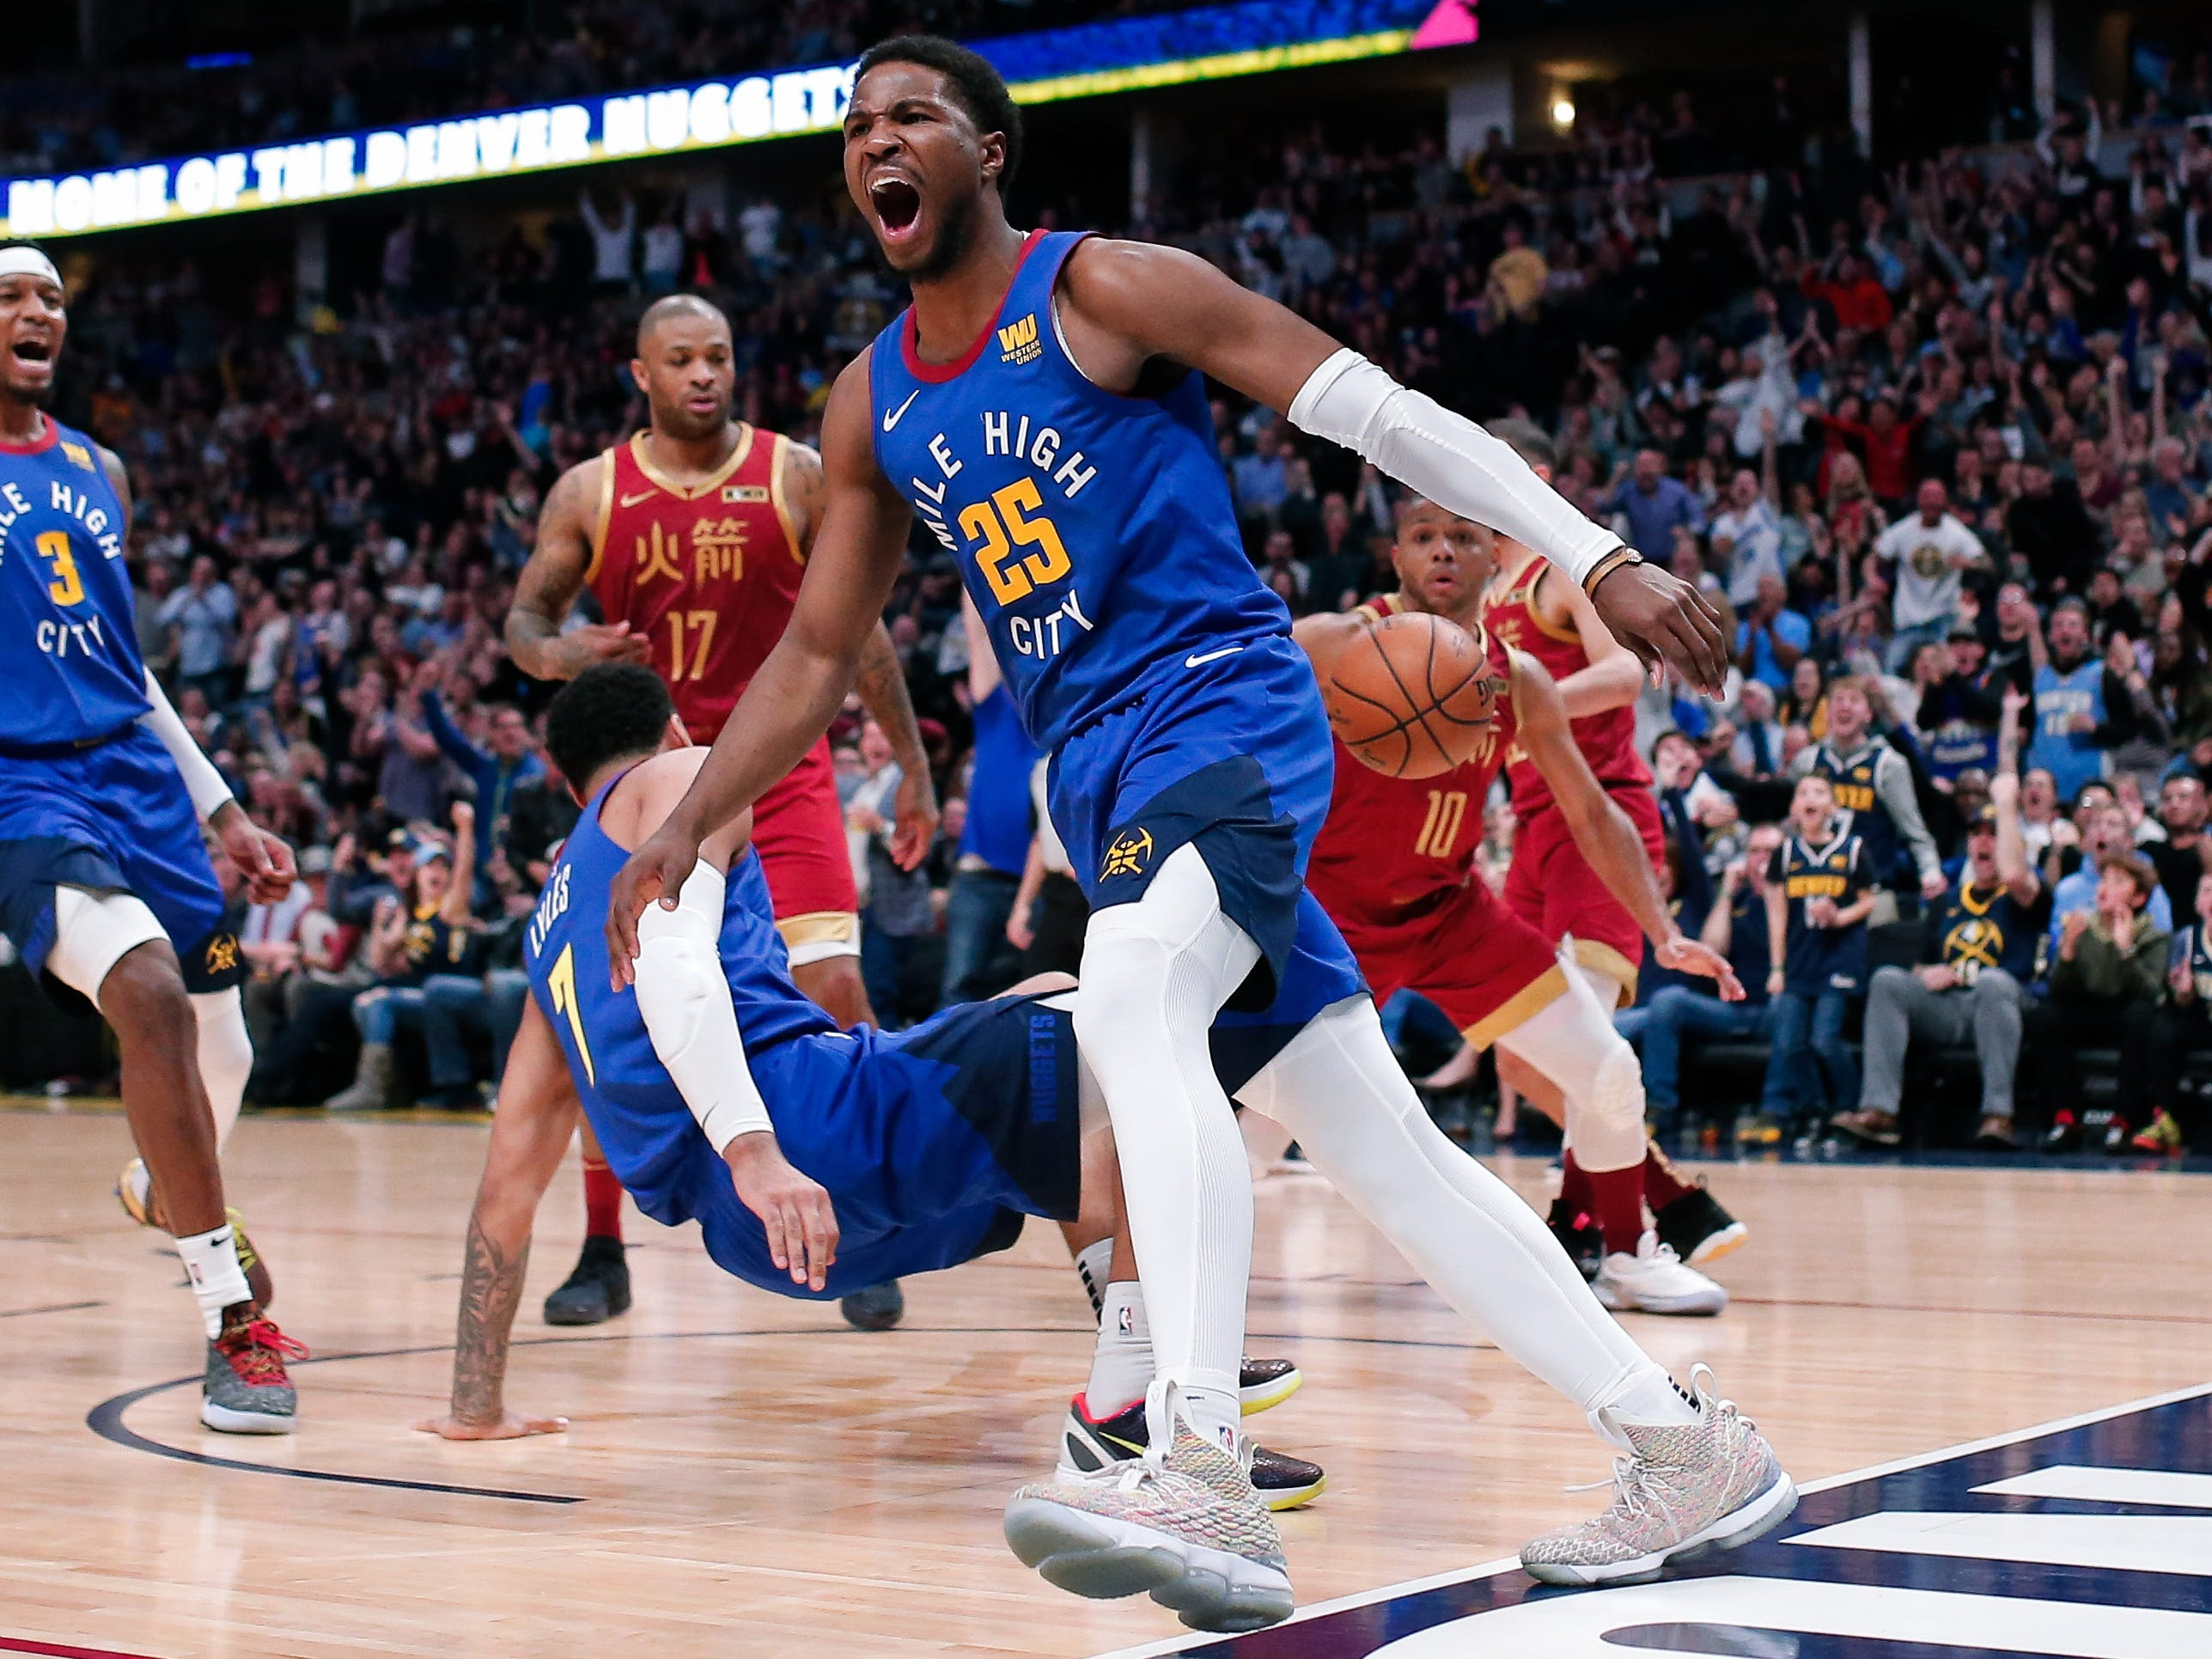 Feb. 1: Nuggets guard Malik Beasley (25) gets fired up after a big first-half dunk against the Rockets in Denver.